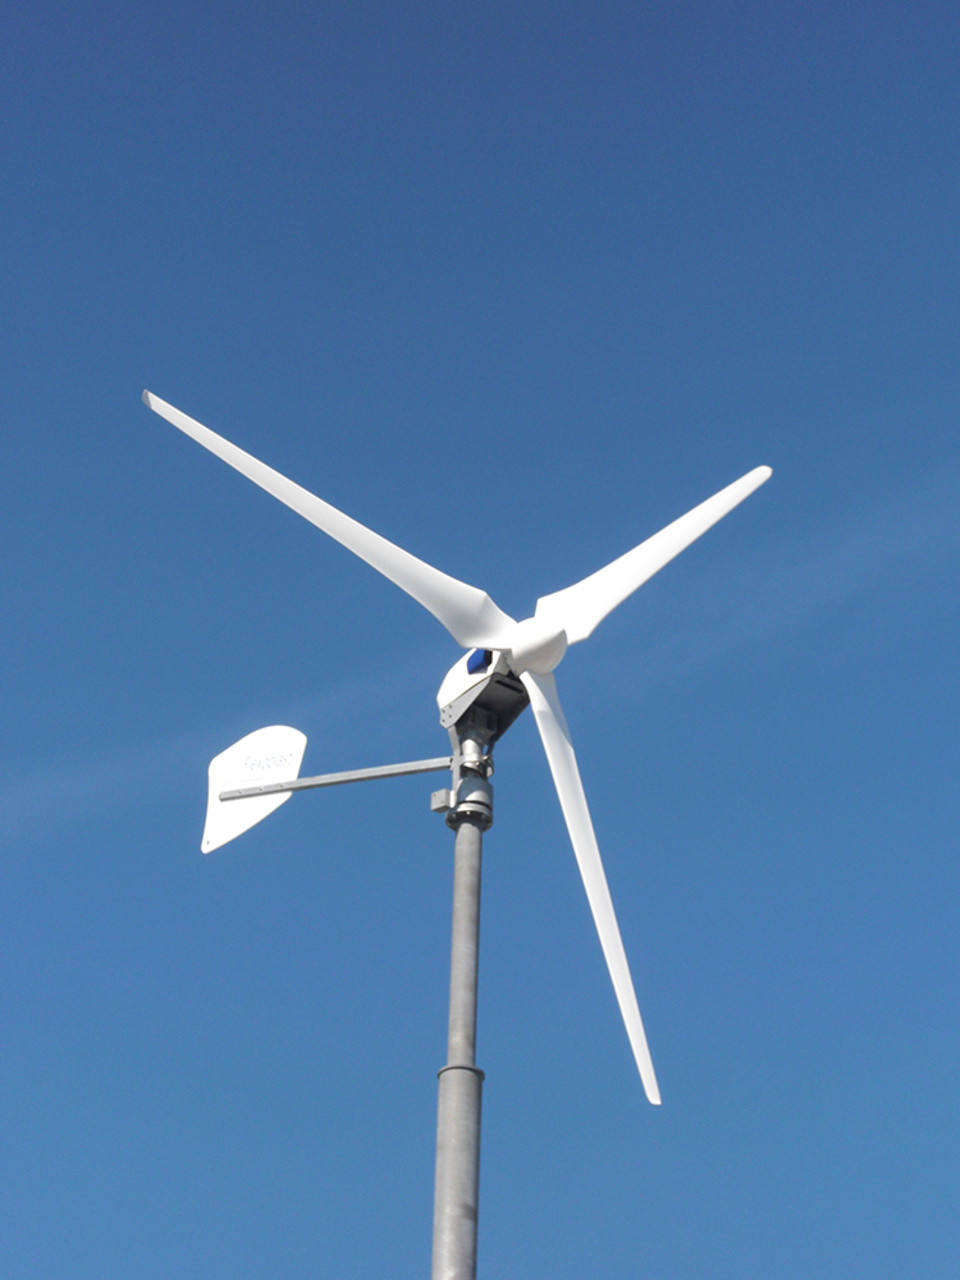 Windkraft2 bei SY Electric GmbH in Niederdorf